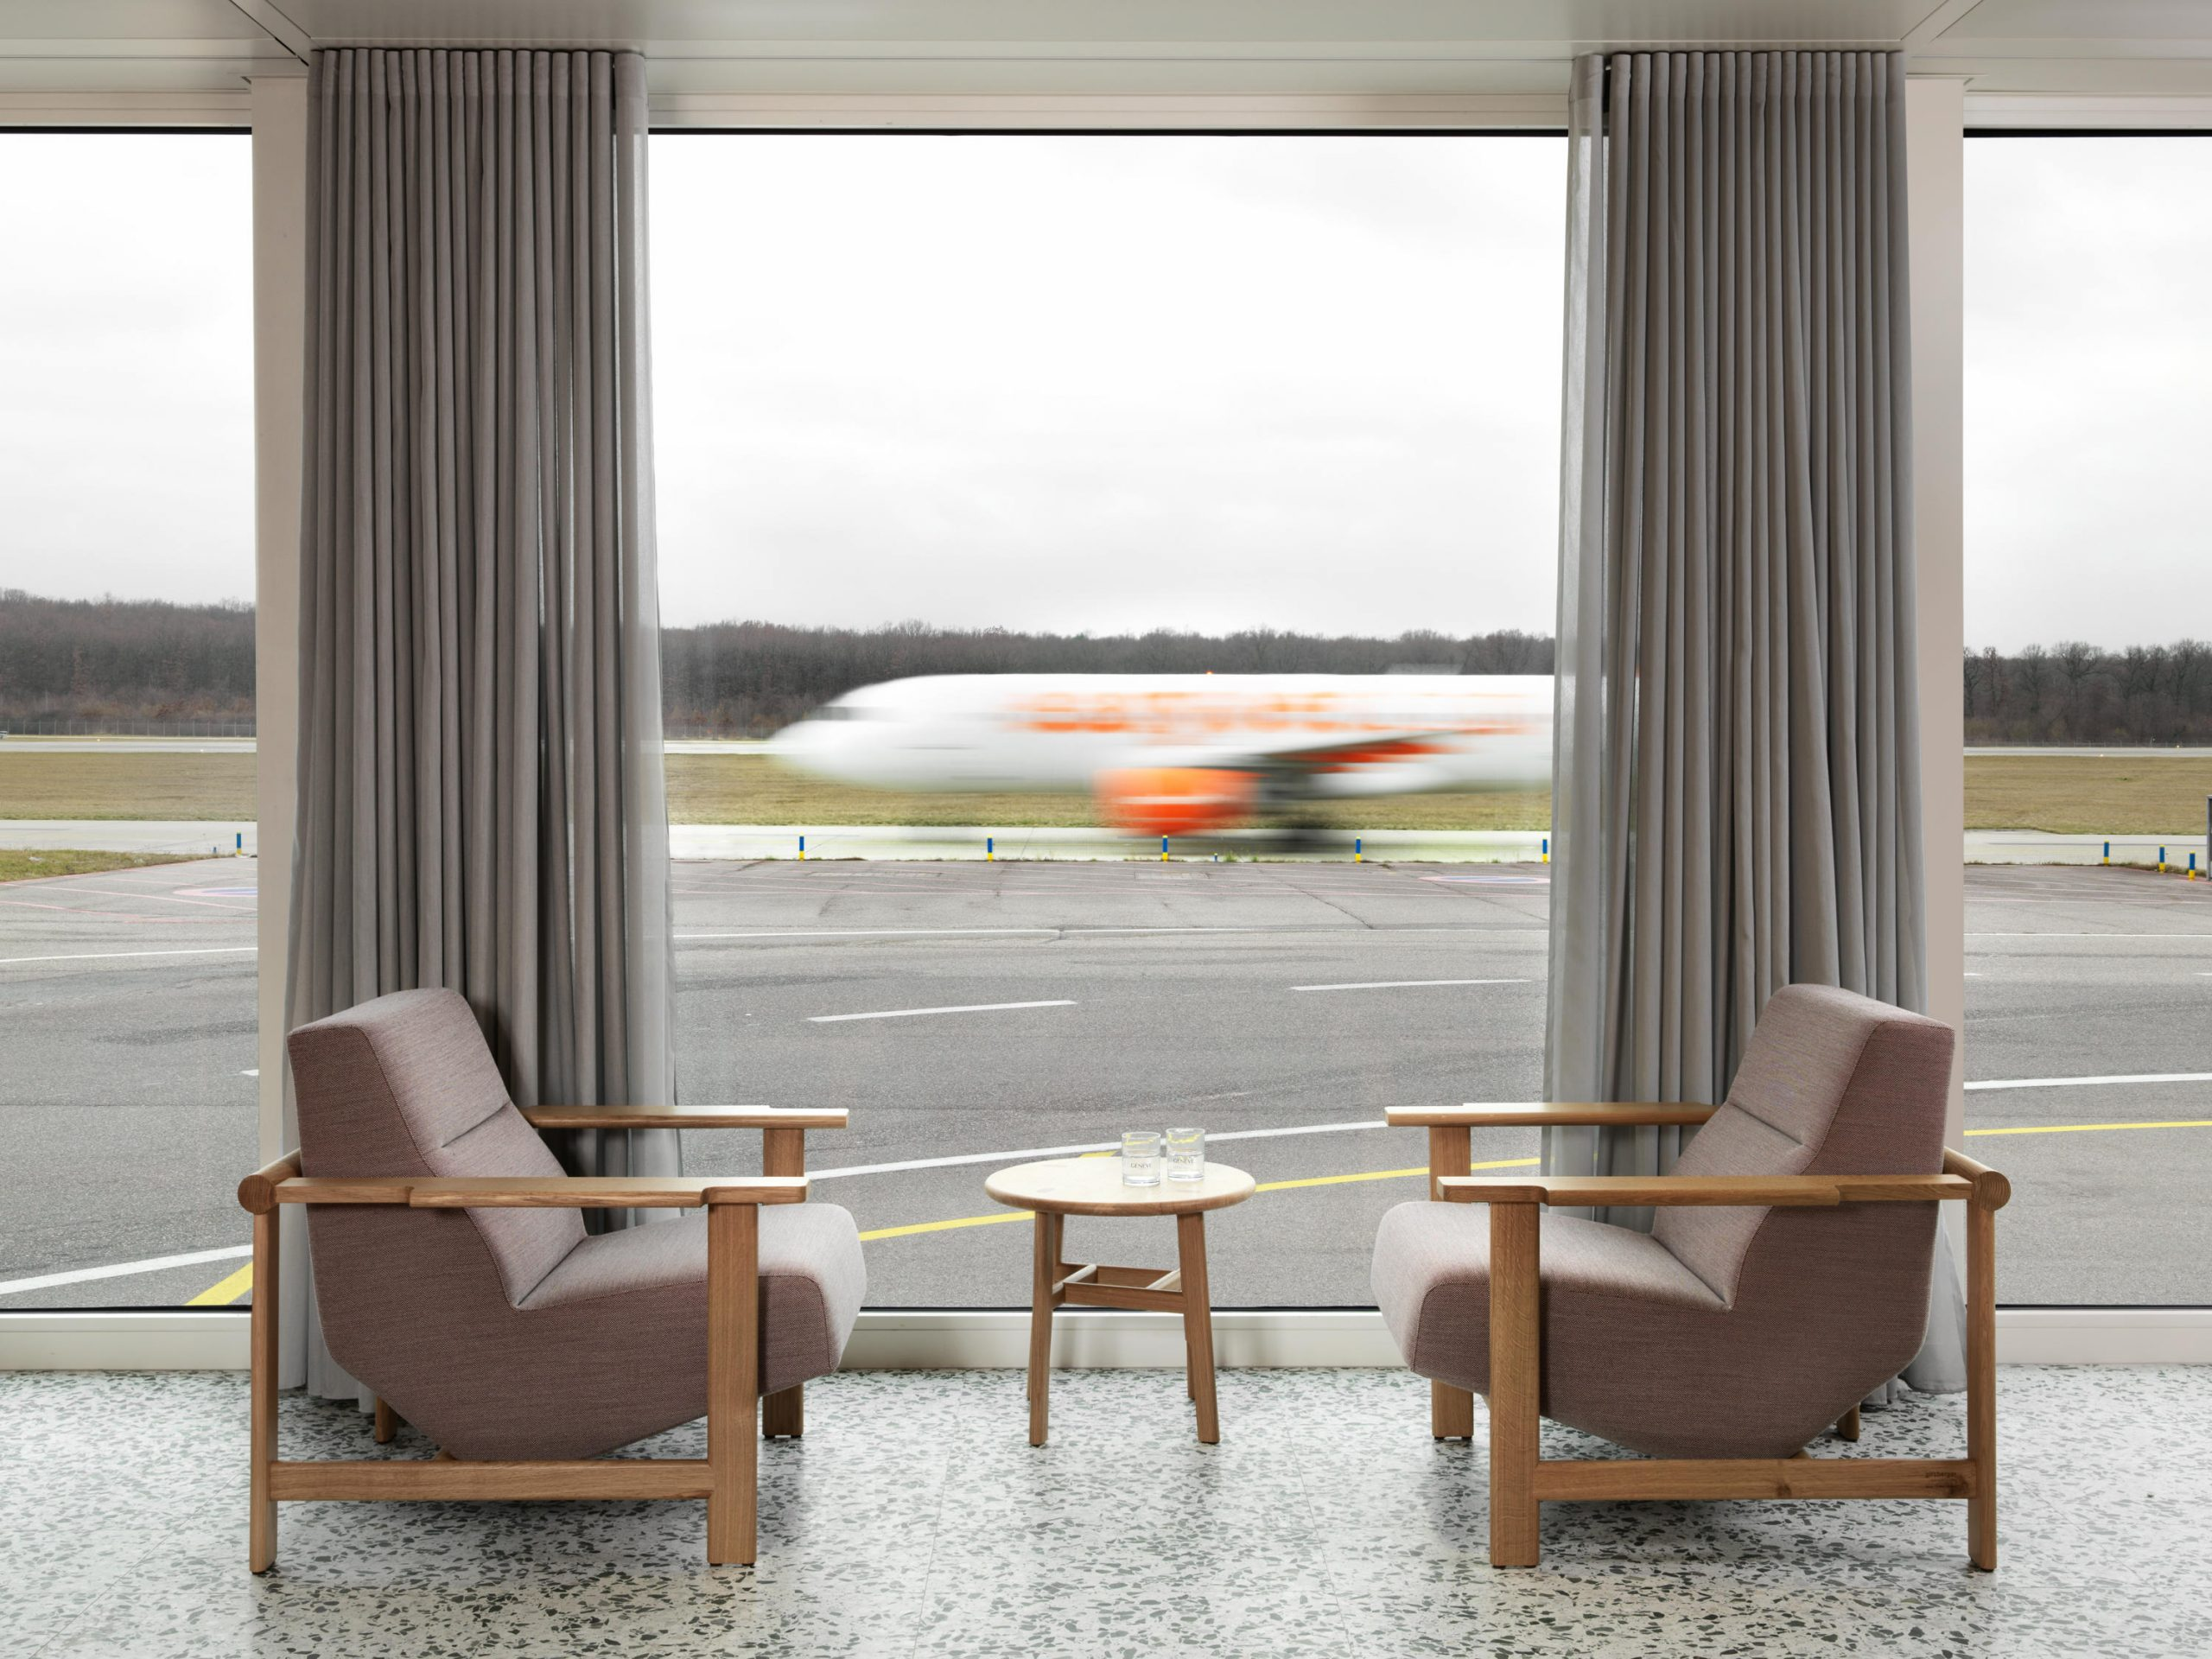 Sky's The Limit: New Airport Lounges Fly High pour Fly Mobilier De Jardin